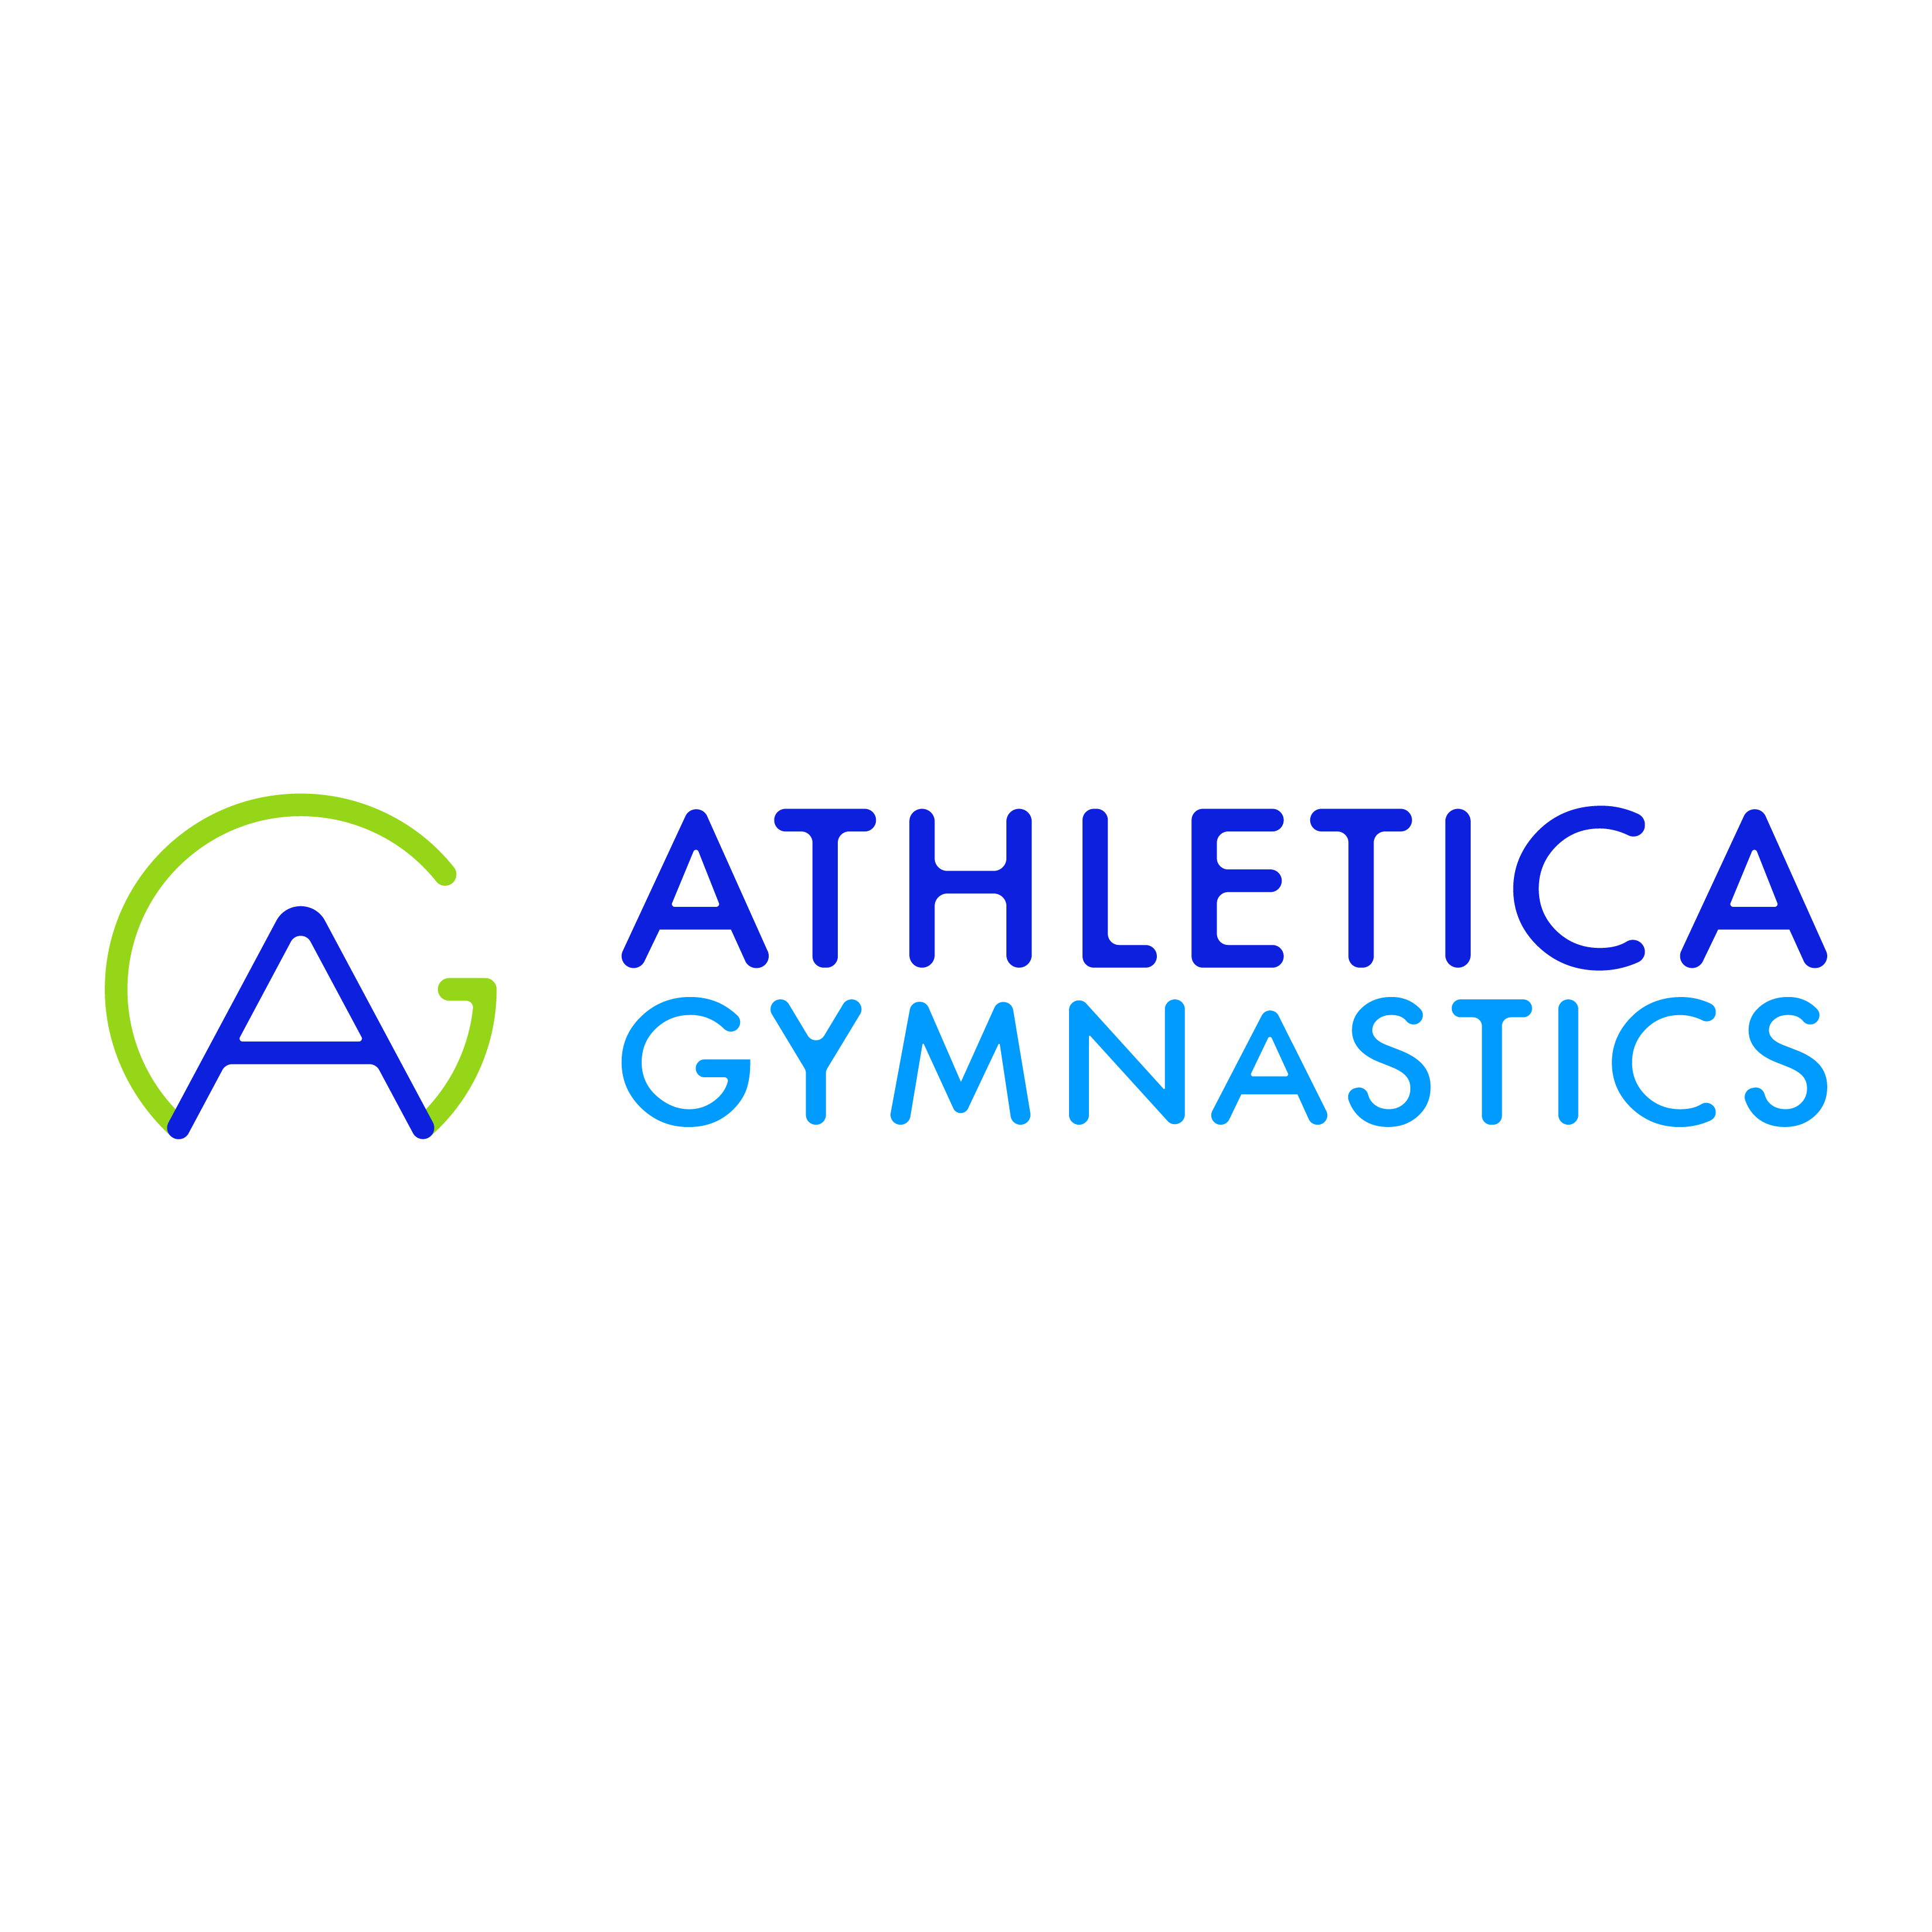 Class program guide fall 2018 calgarys child magazine gymnastics programs for all ages and levels from beginners to competitive athletes our skilled coaches and training staff benefit children and athletes of fandeluxe Choice Image